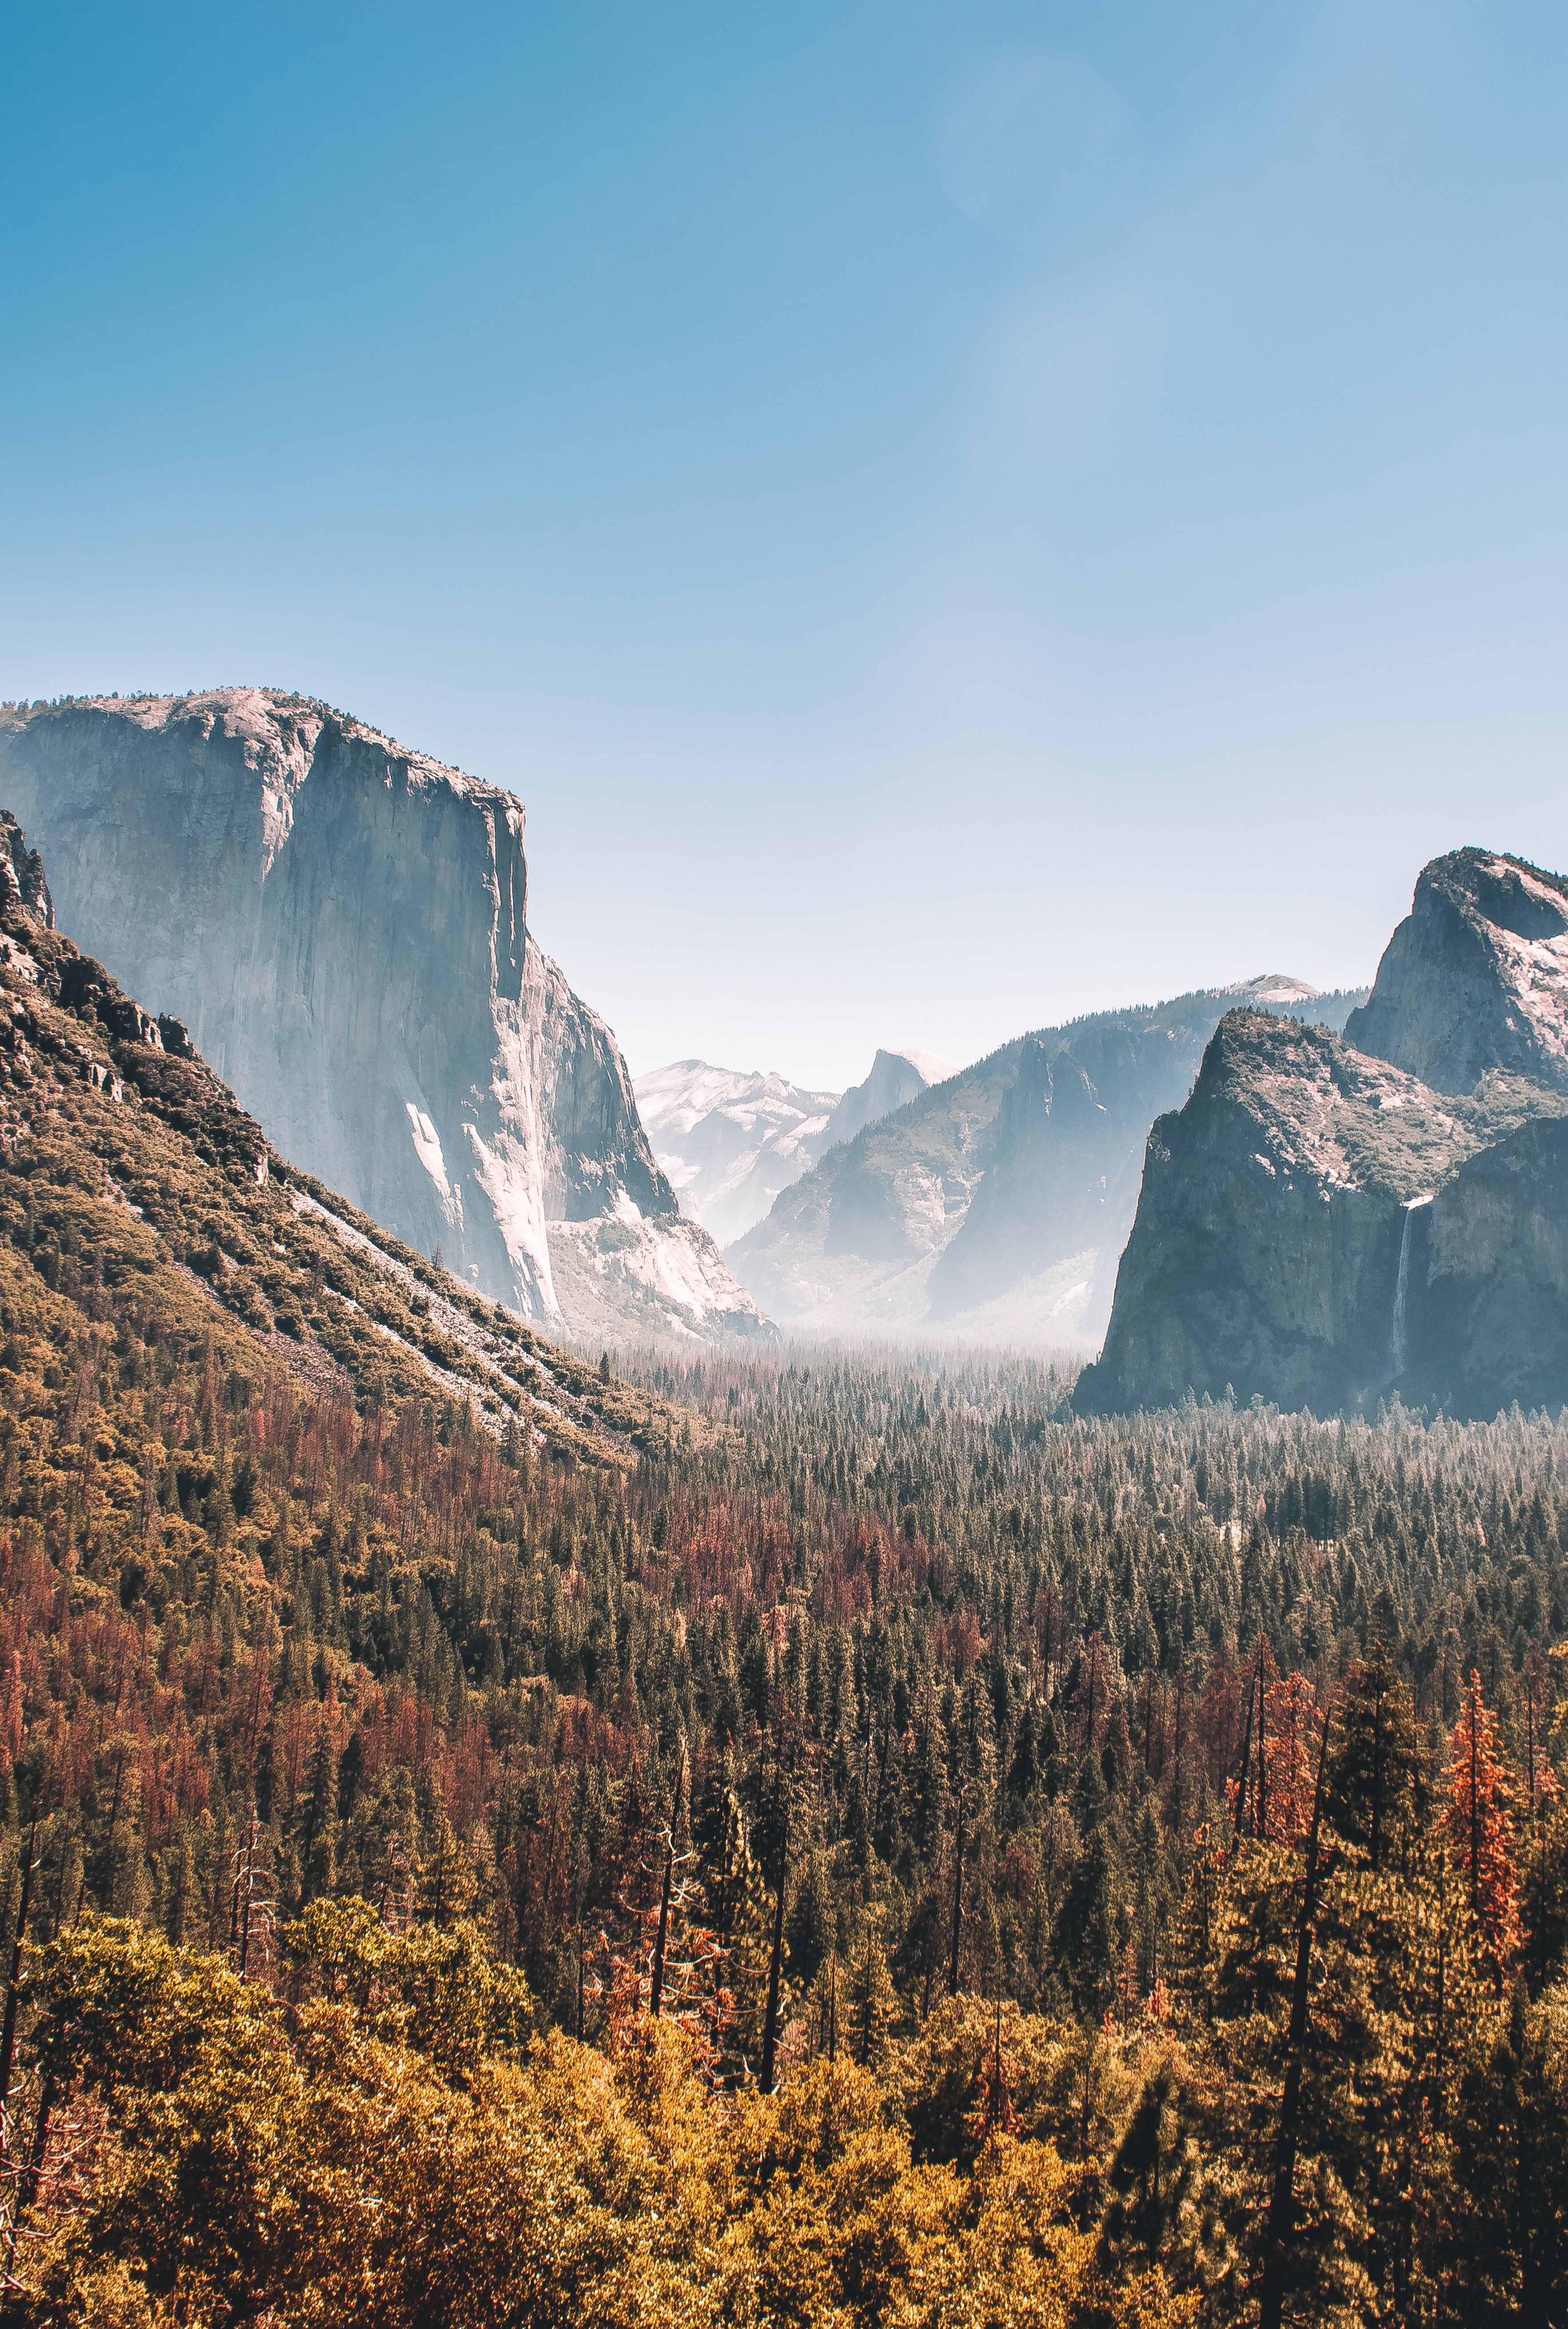 trees near mountains during daytime landscape photo